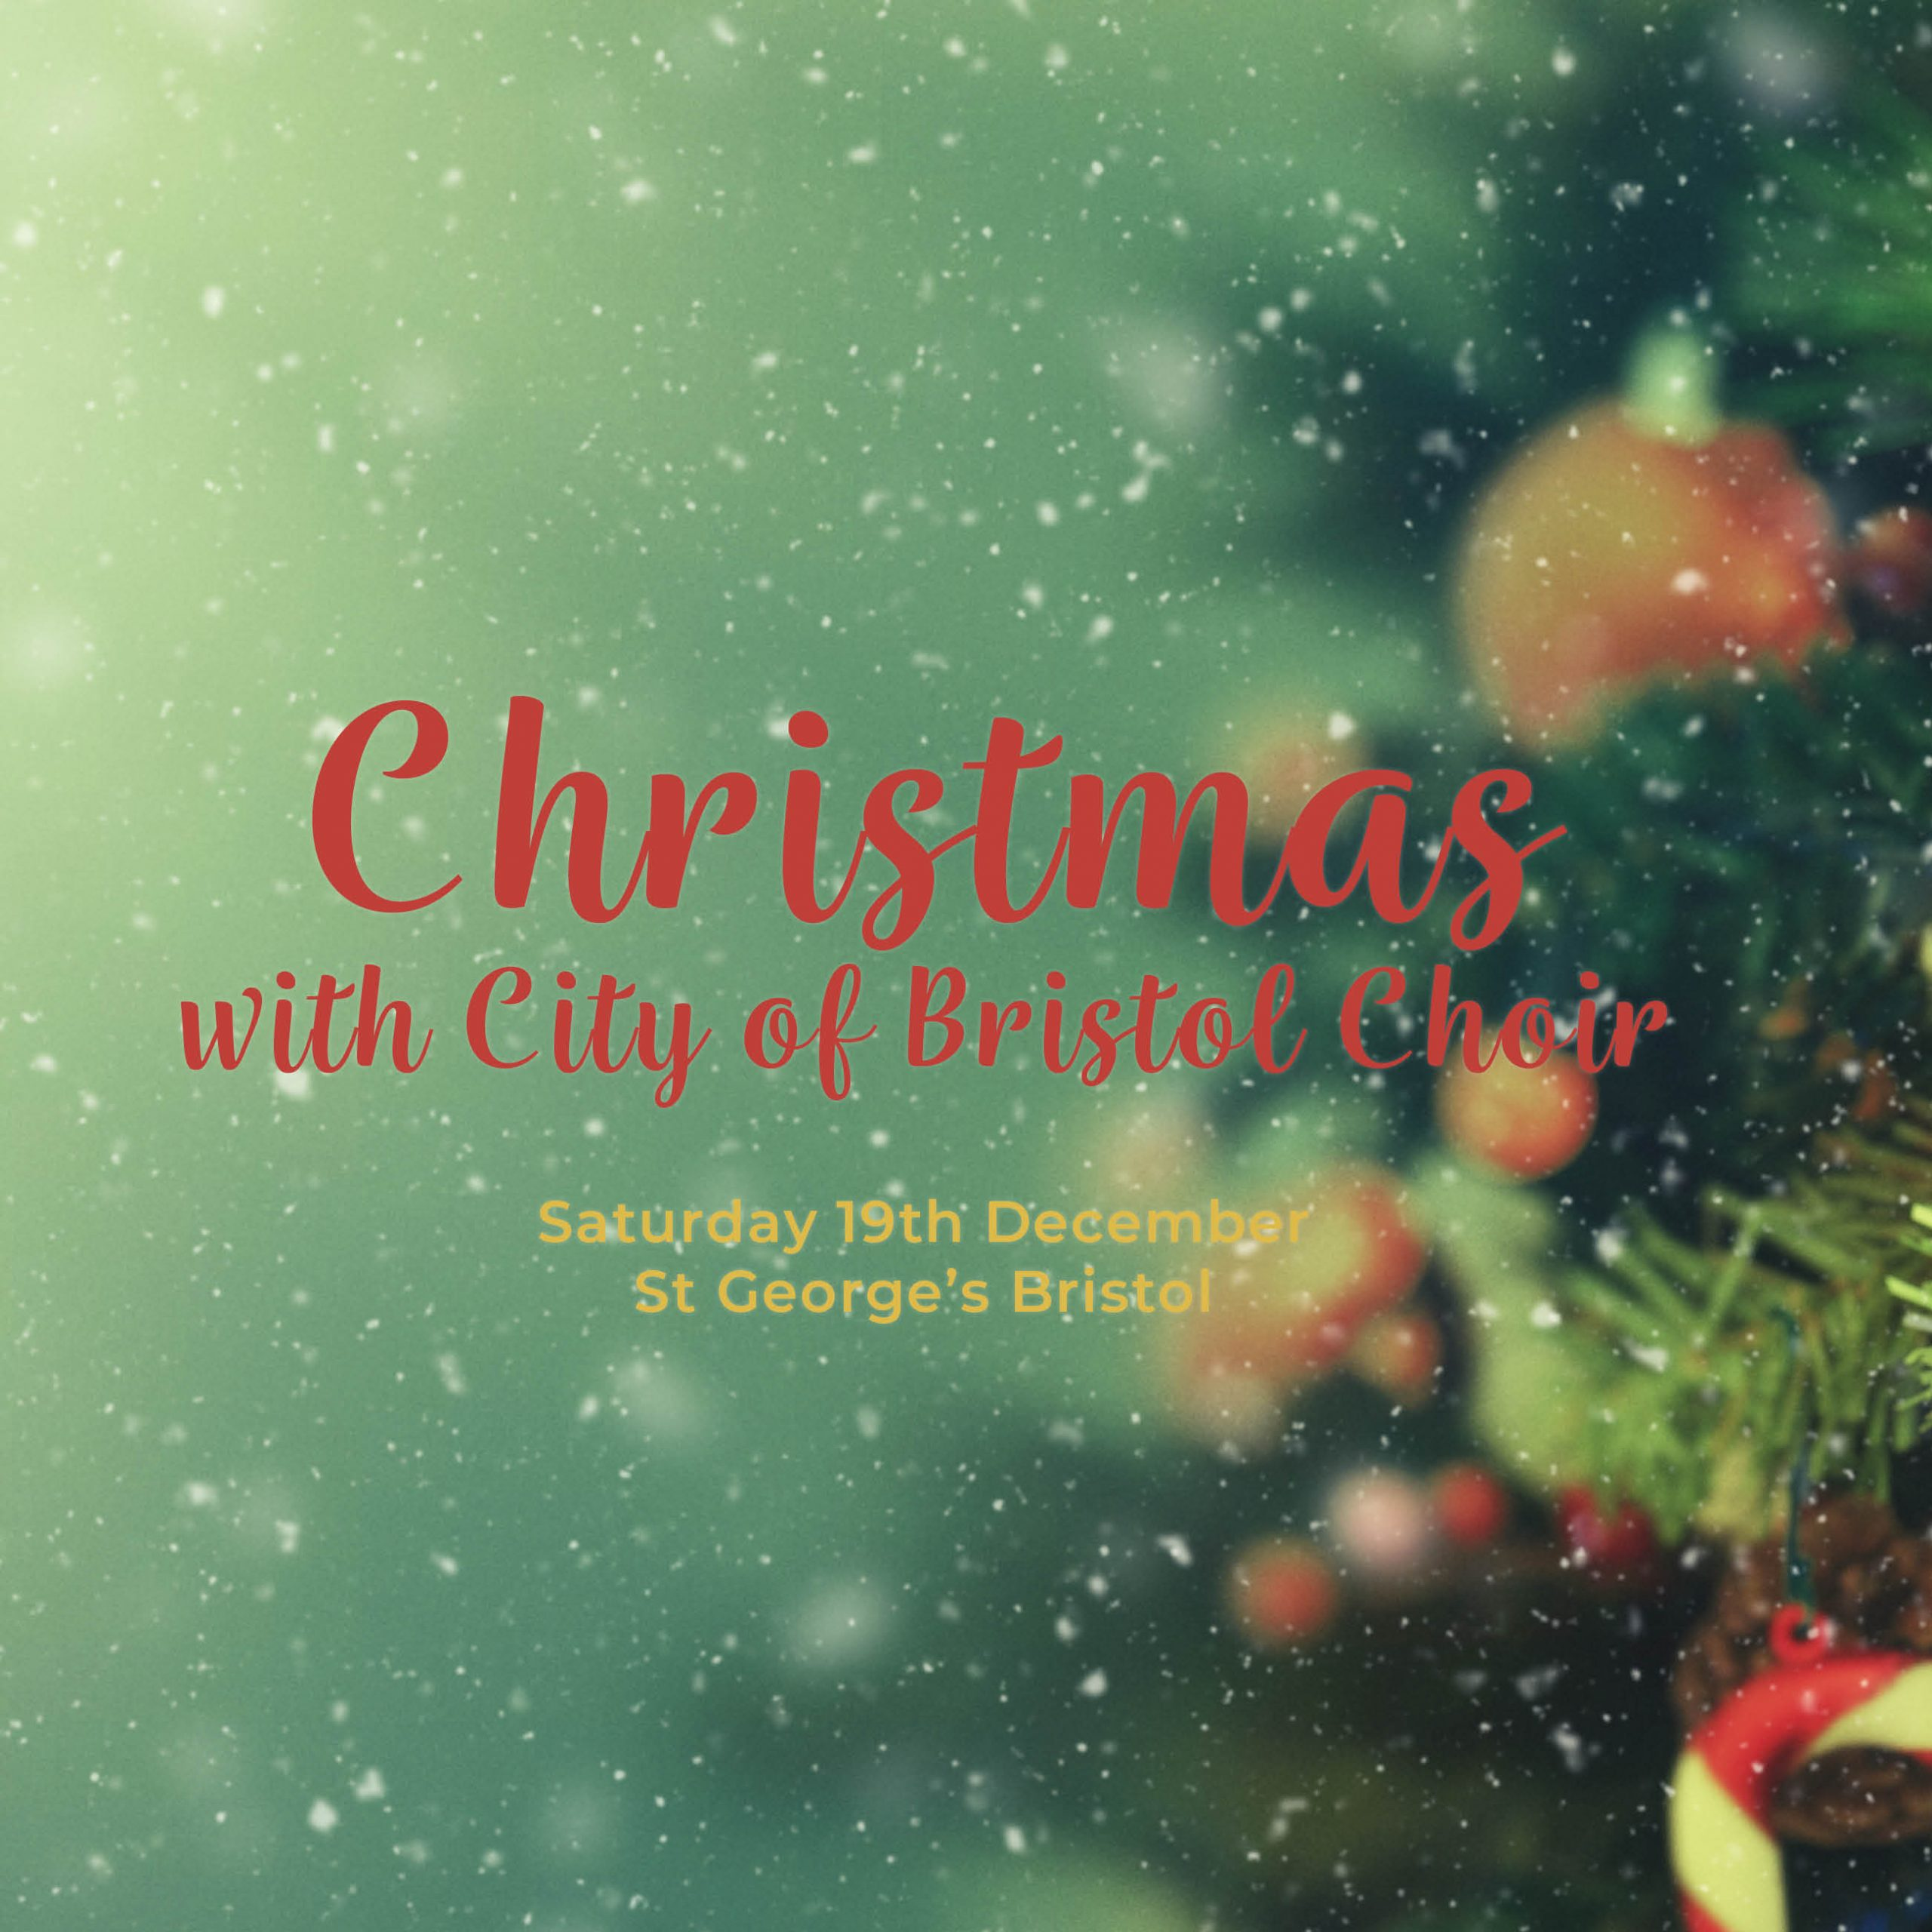 Christmas with City of Bristol Choir